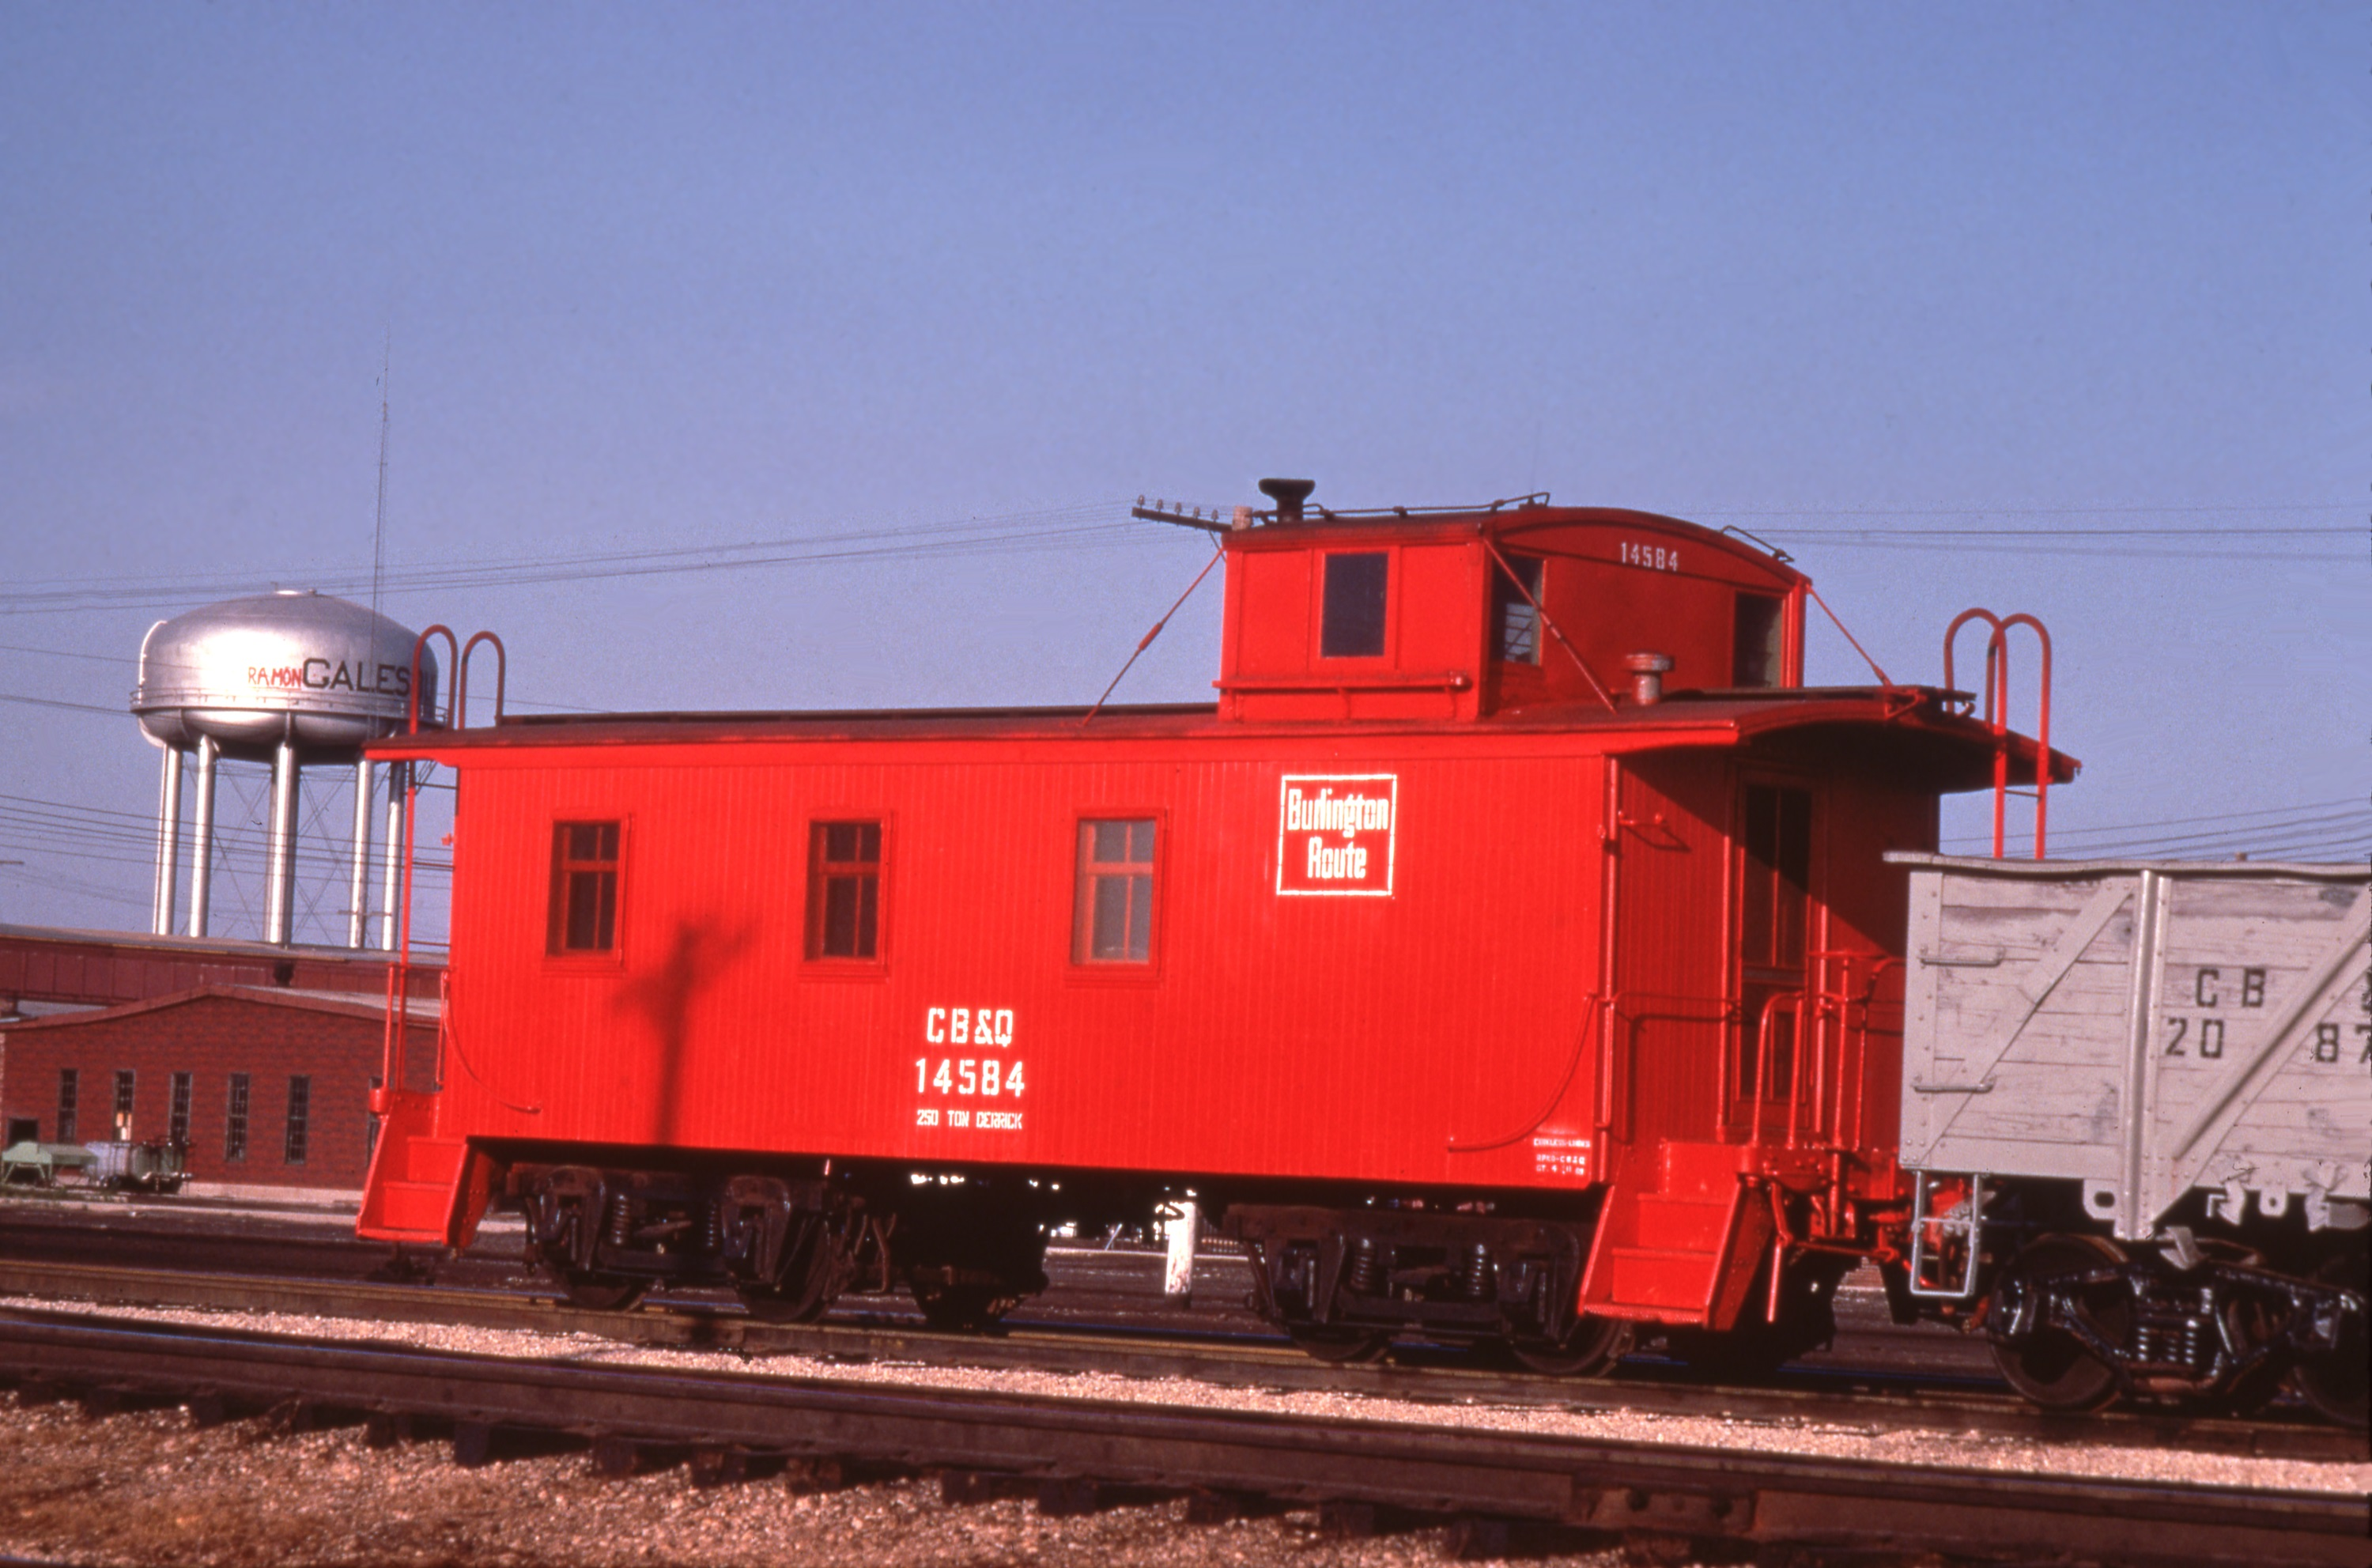 Waycar #14584 in service at Galesburg, IL (F. Hol Wagner Photo, BRHS Collection)